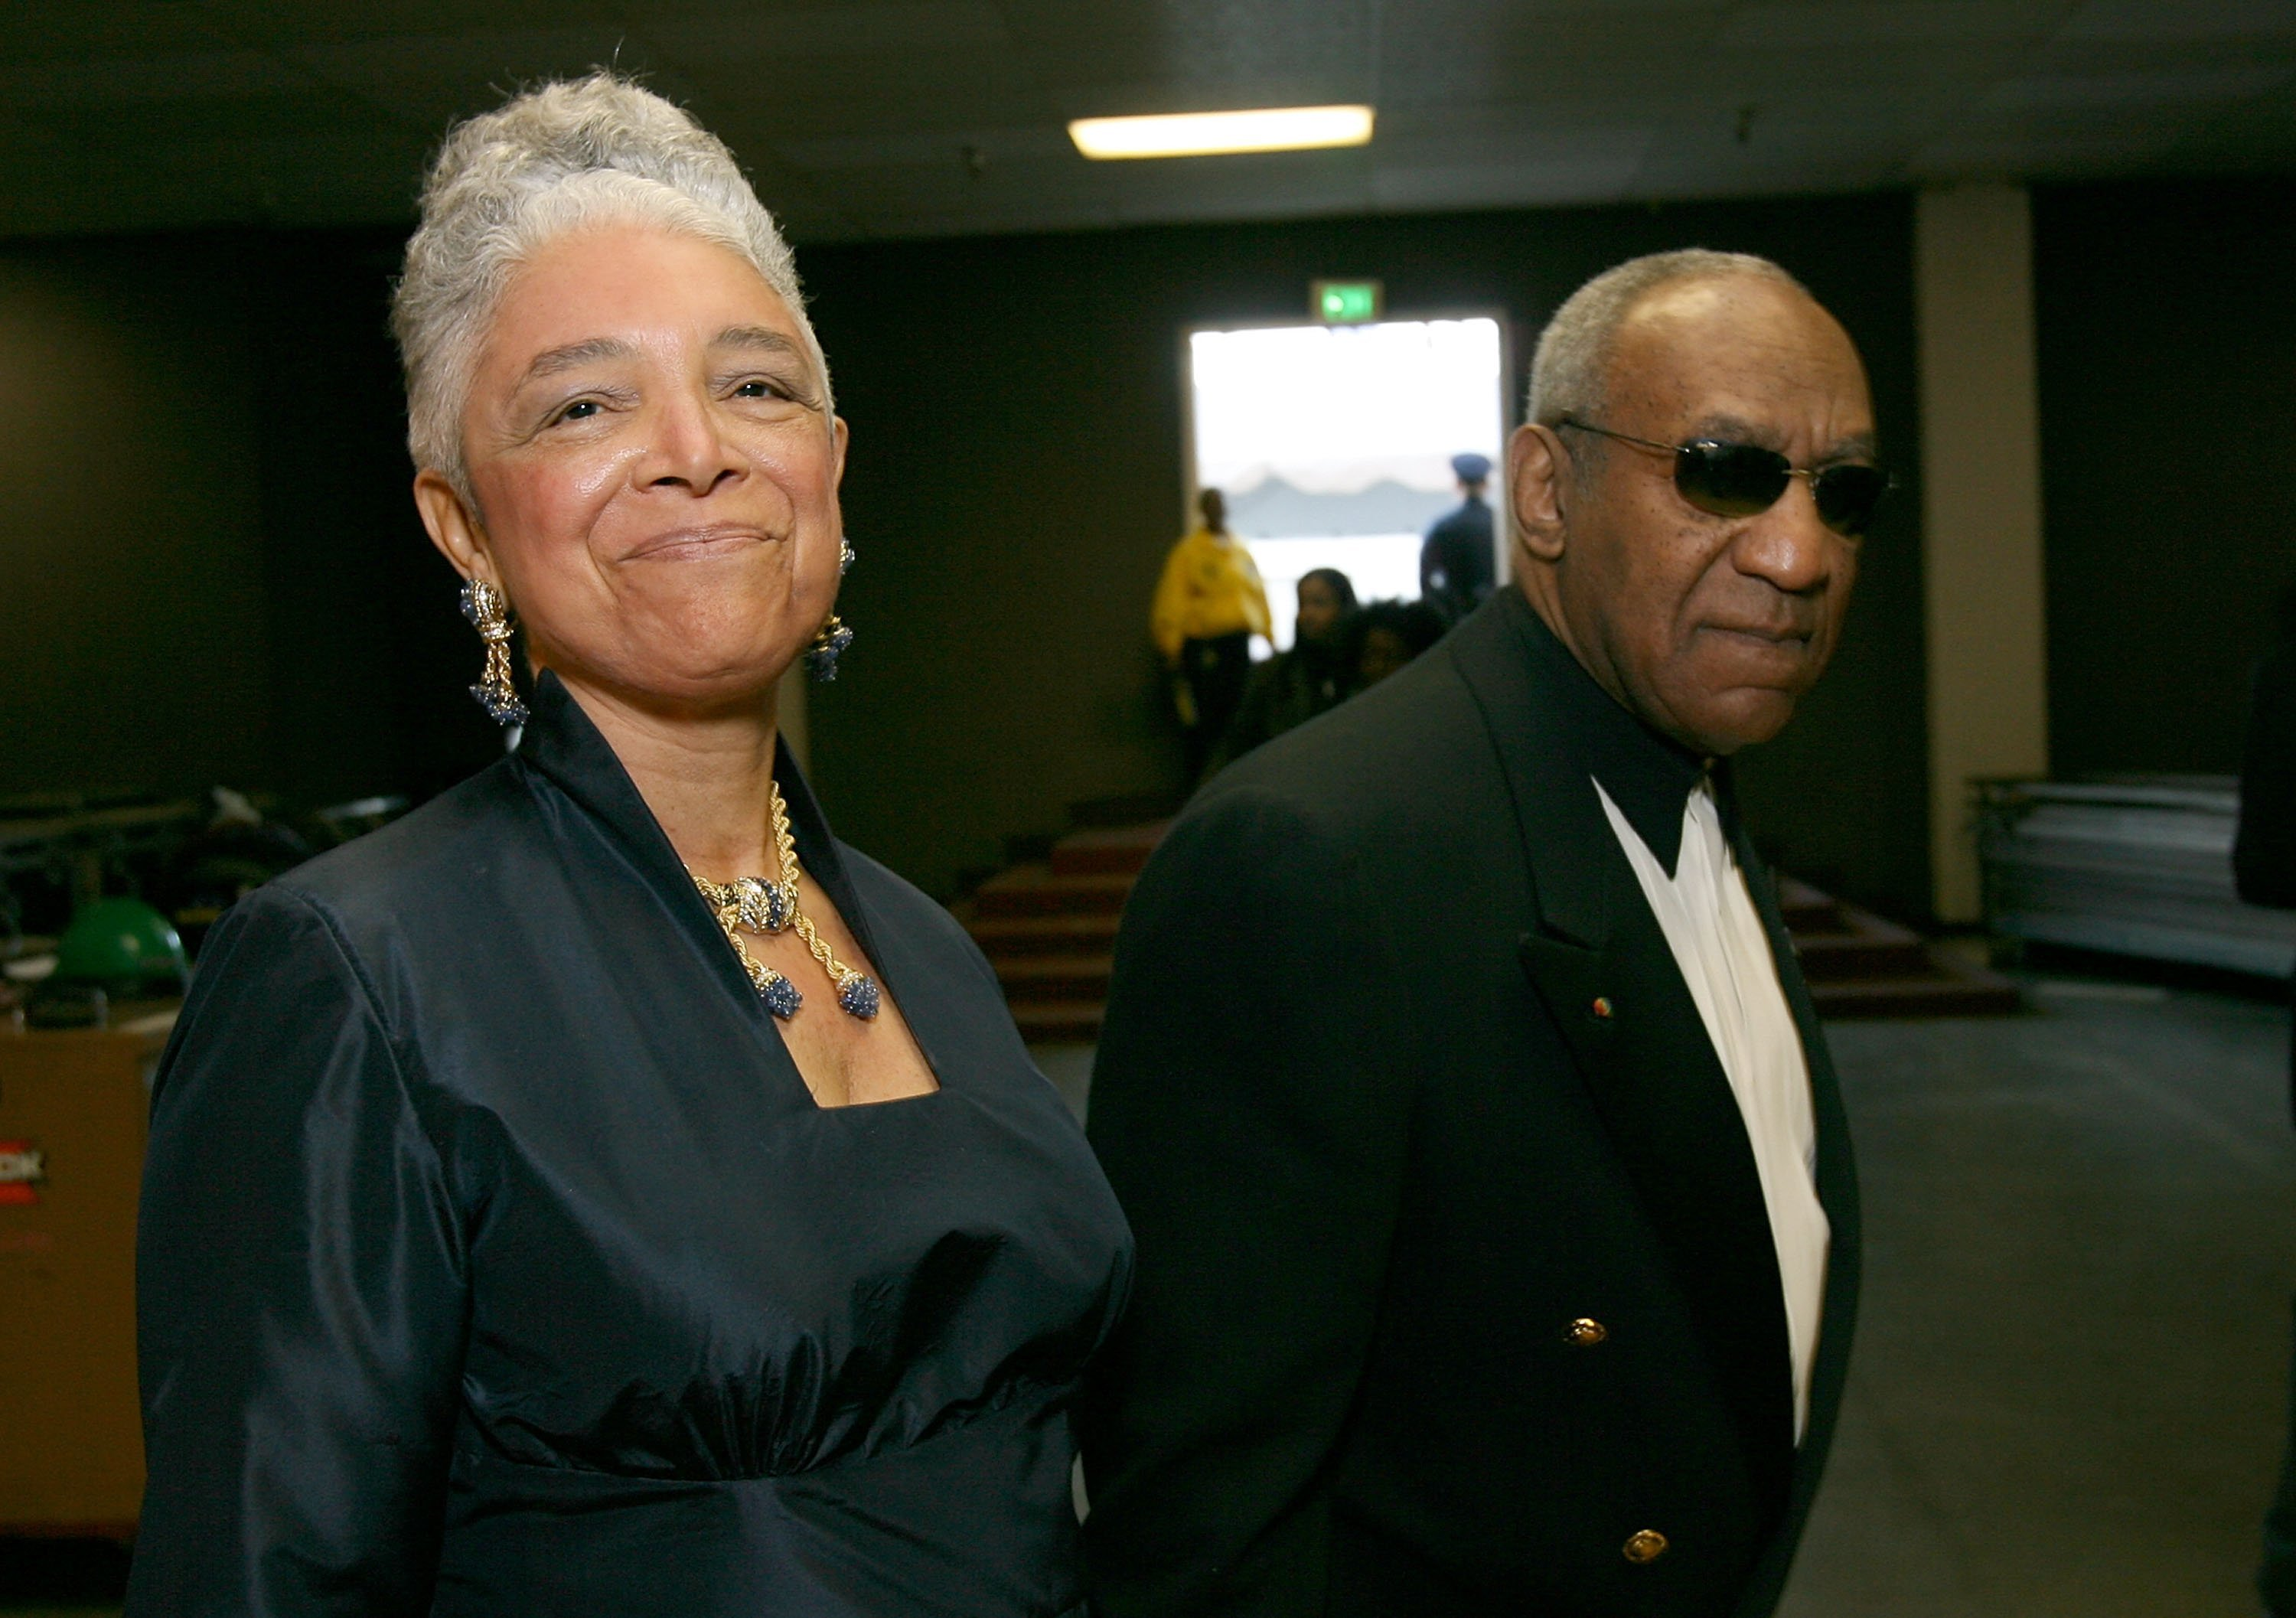 Comedian Bill Cosby and wife Camille O. Cosby walk backstage during the 38th annual NAACP Image Awards held at the Shrine Auditorium on March 2, 2007, in Los Angeles, California. | Source: Getty Images